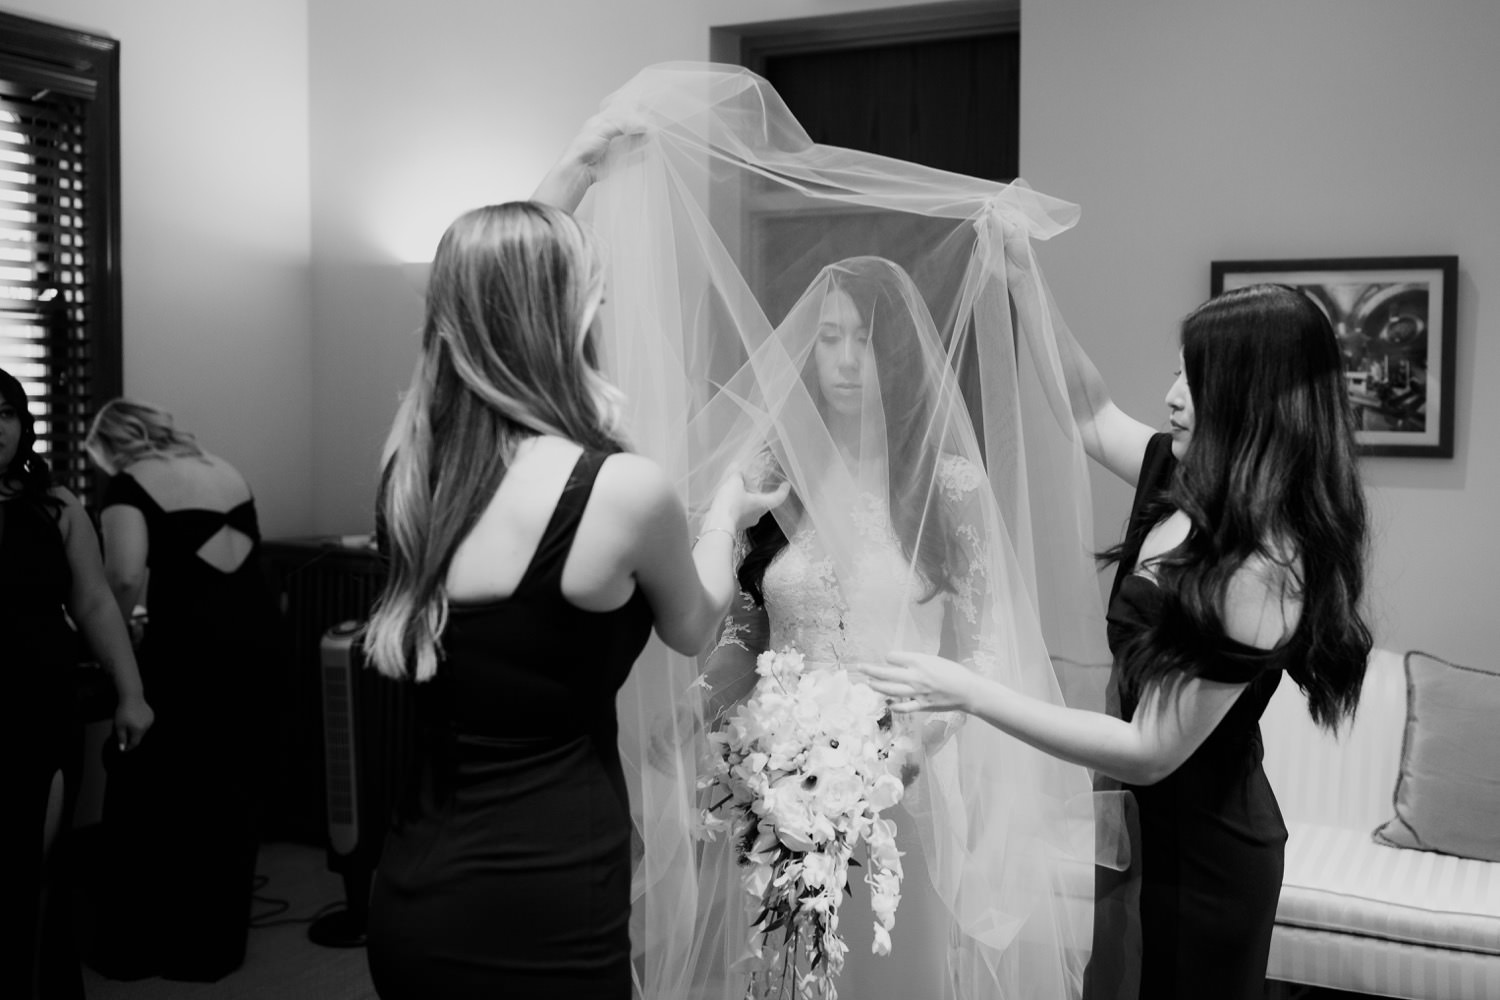 The bride getting ready to walk down the isle in St. Clement Church in Chicago